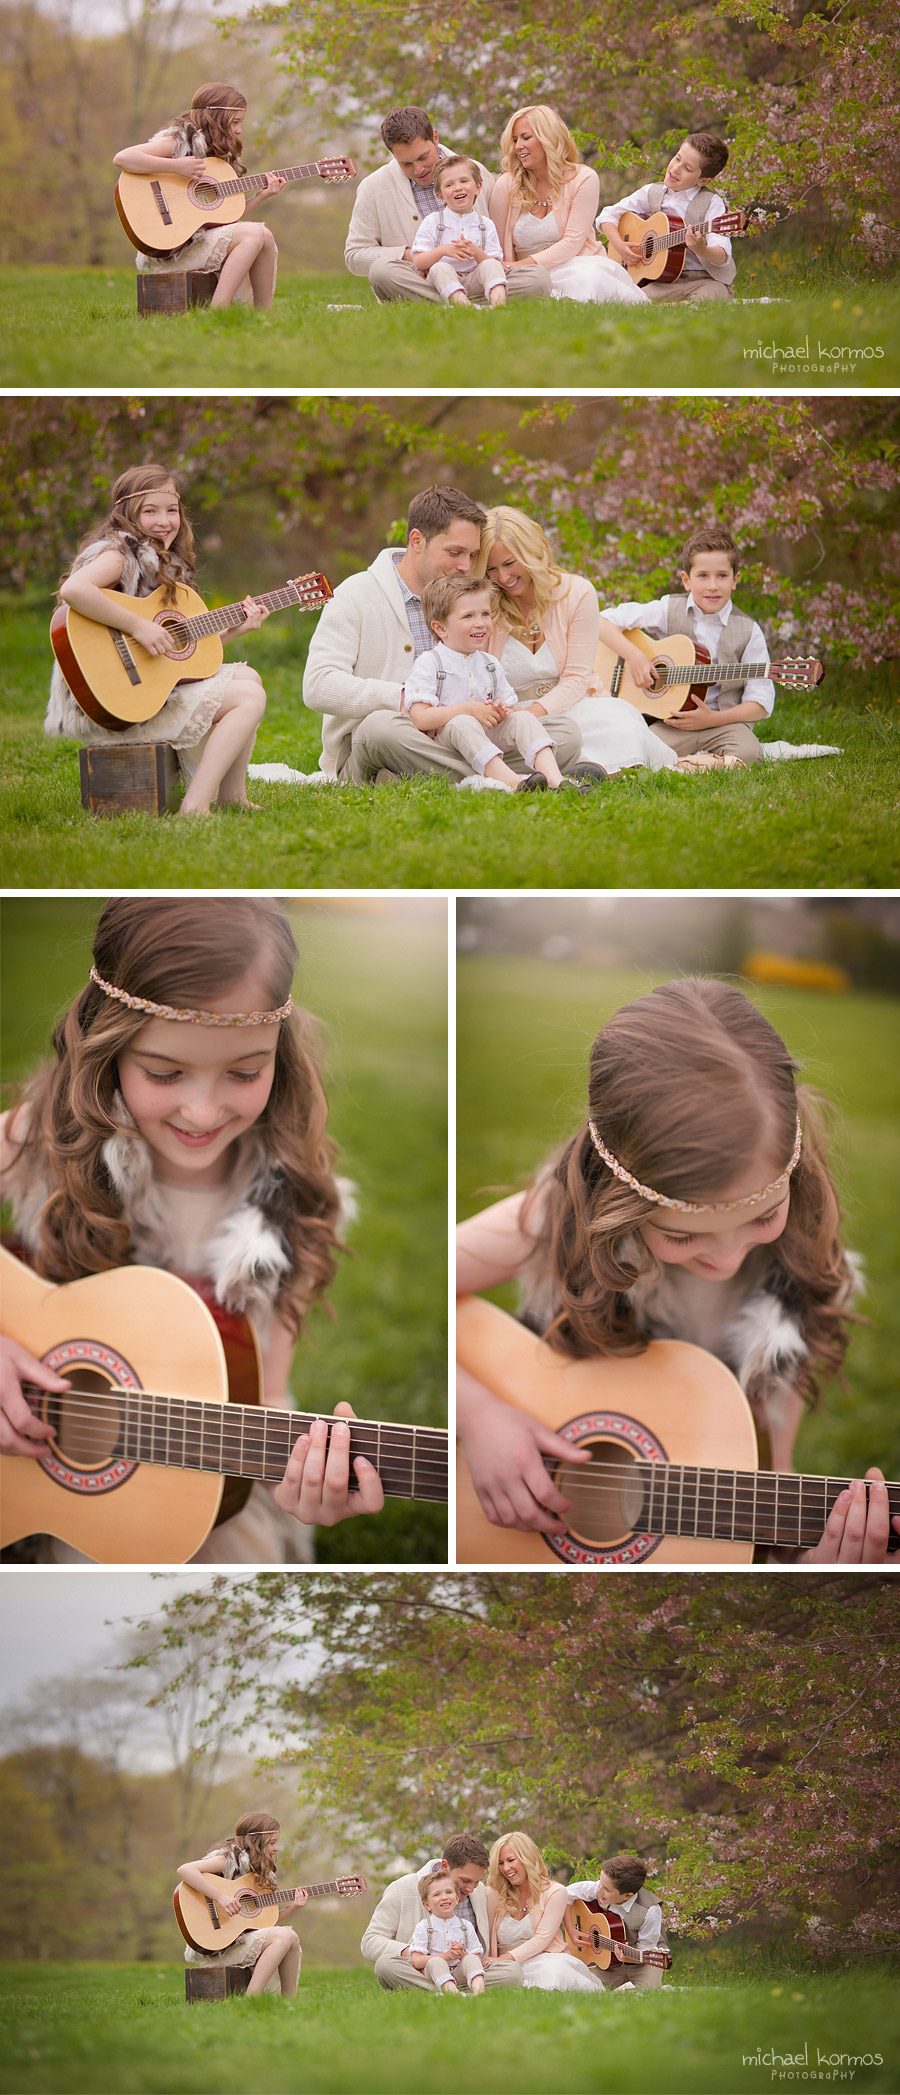 Children playing guitar in an open field during photo session